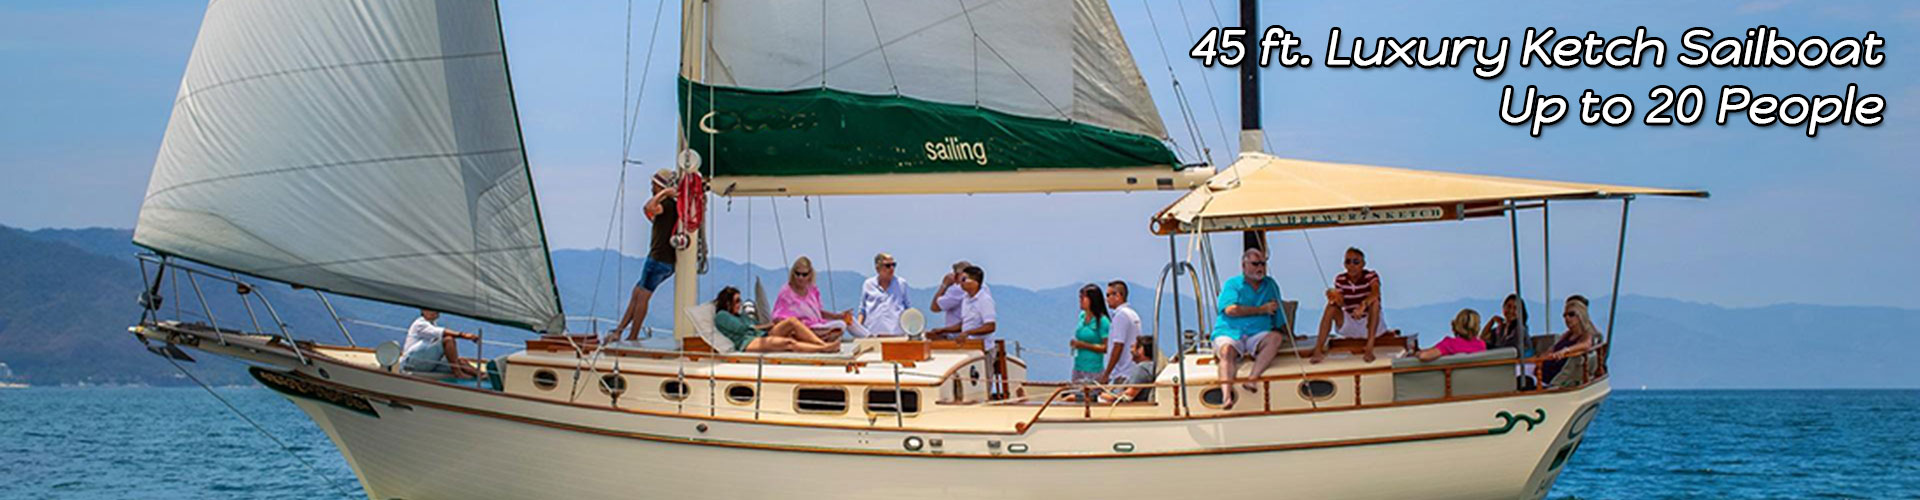 45-ft.-Luxury-Ketch-Sailboat-w-Up-to-20-People